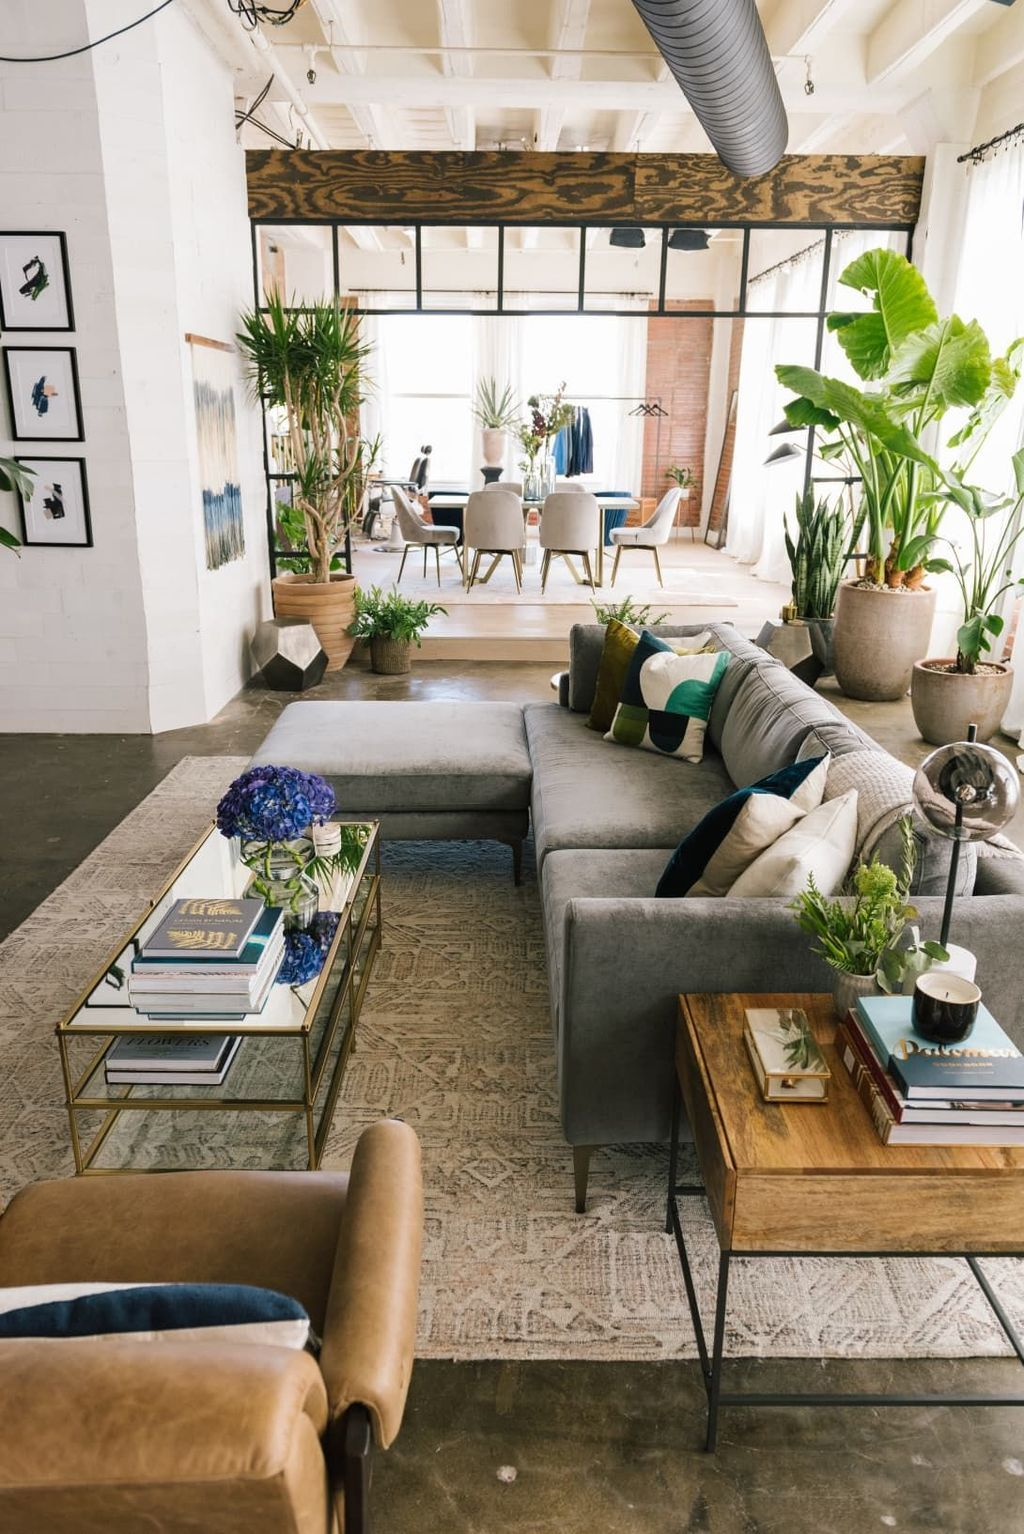 32 Stunning Loft Apartment Decorating Ideas You Should Try In 2020